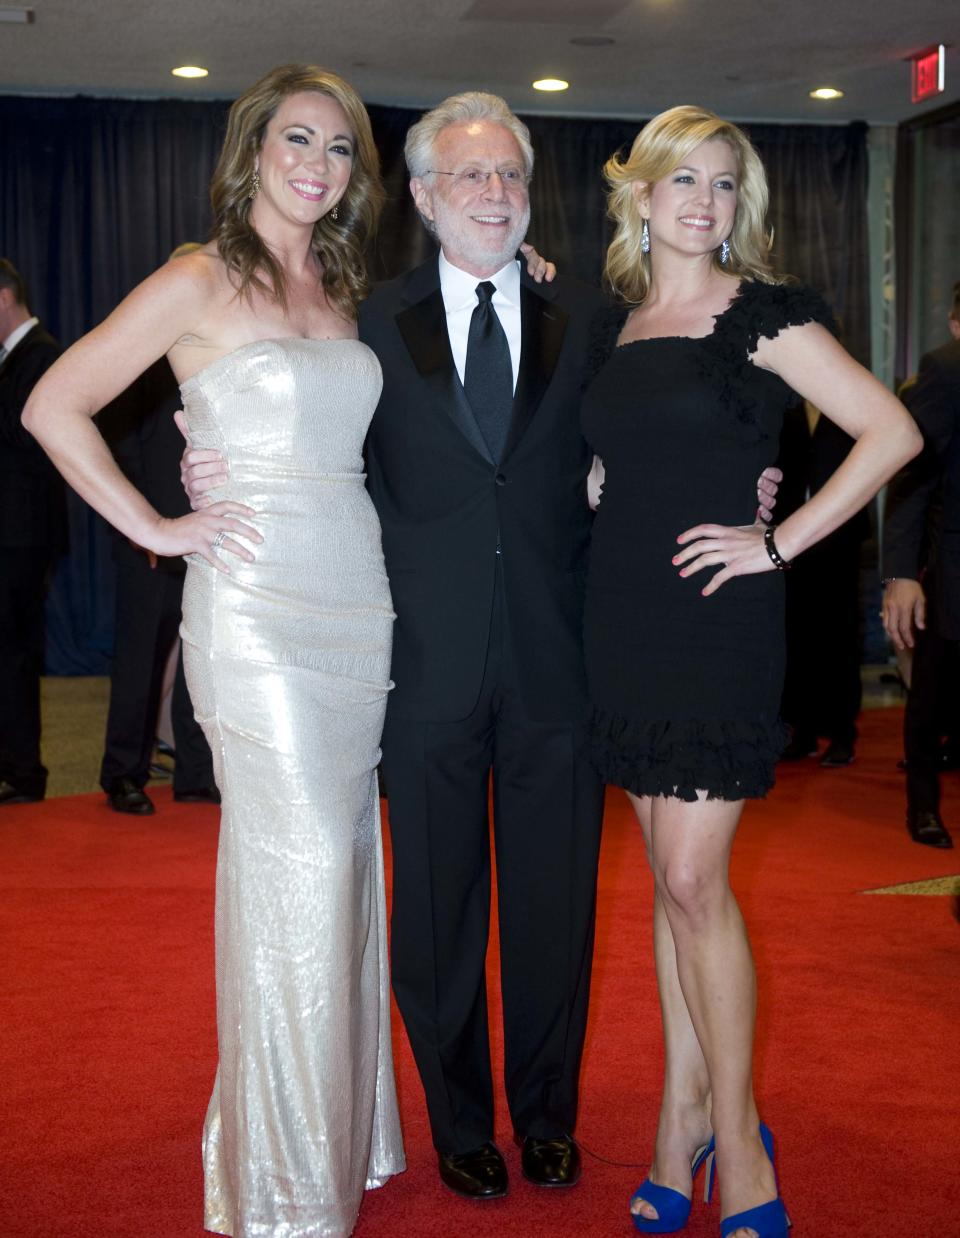 Journalist Wolf Blitzer, center, arrives at the White House Correspondents' Association Dinner with his guests on Saturday, April 28, 2012, in Washington. (AP Photo/Kevin Wolf)